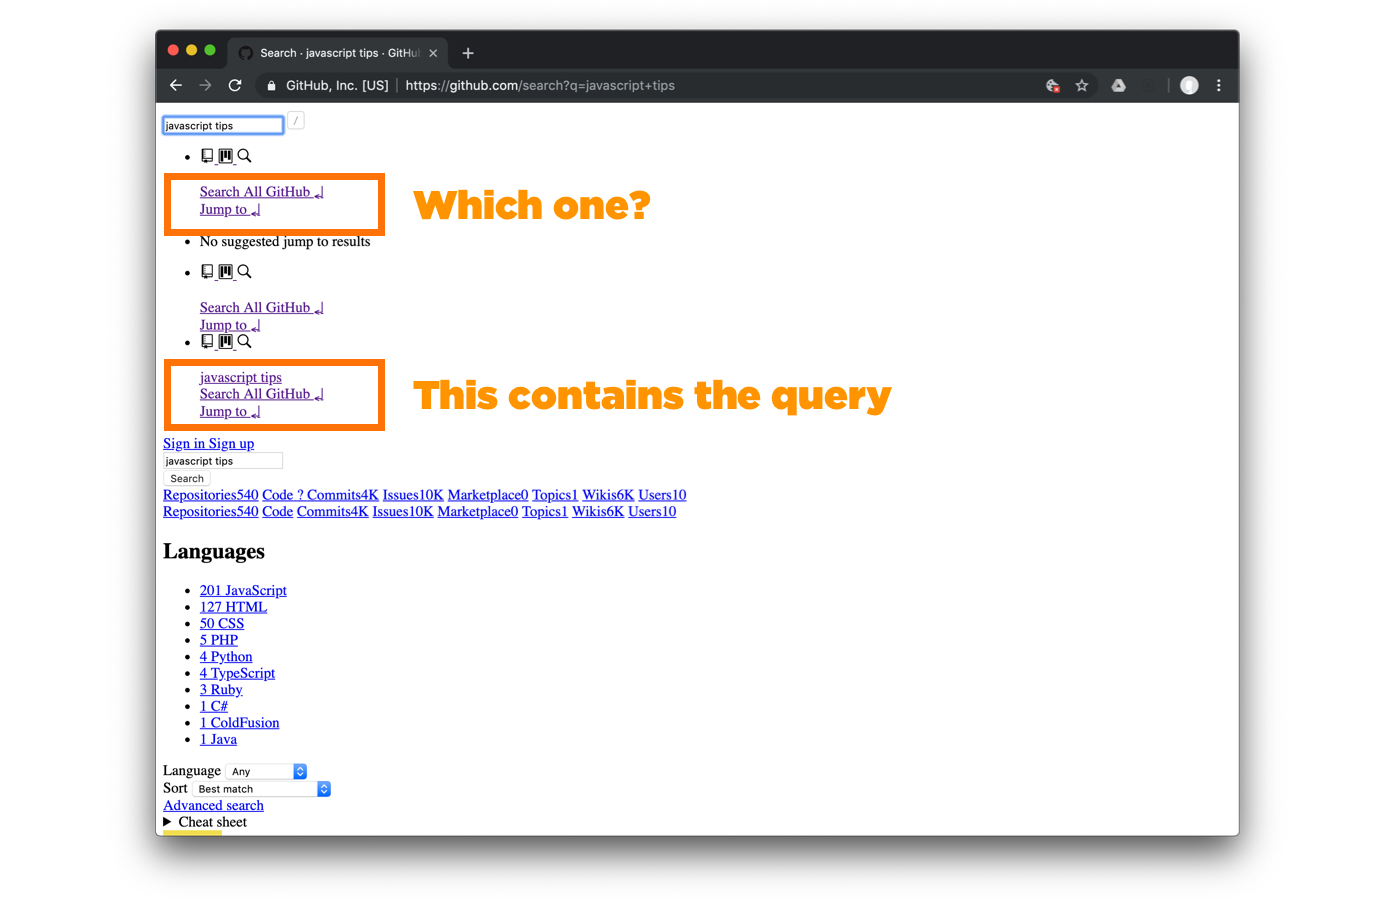 Orange outline boxes around groups of search links